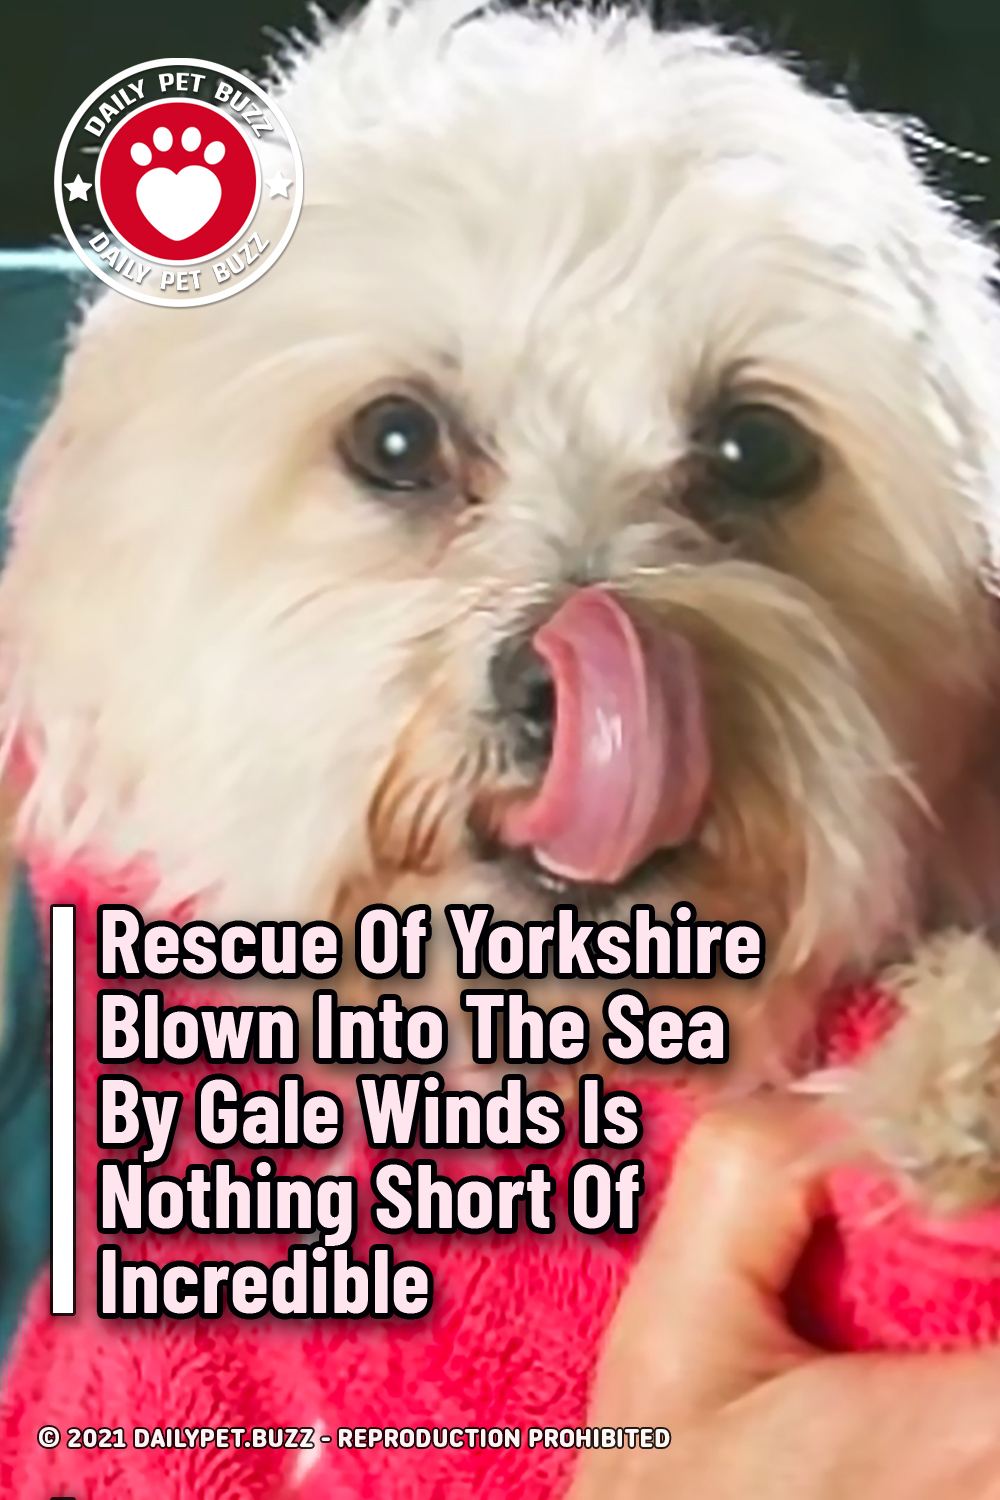 Rescue Of Yorkshire Blown Into The Sea By Gale Winds Is Nothing Short Of Incredible